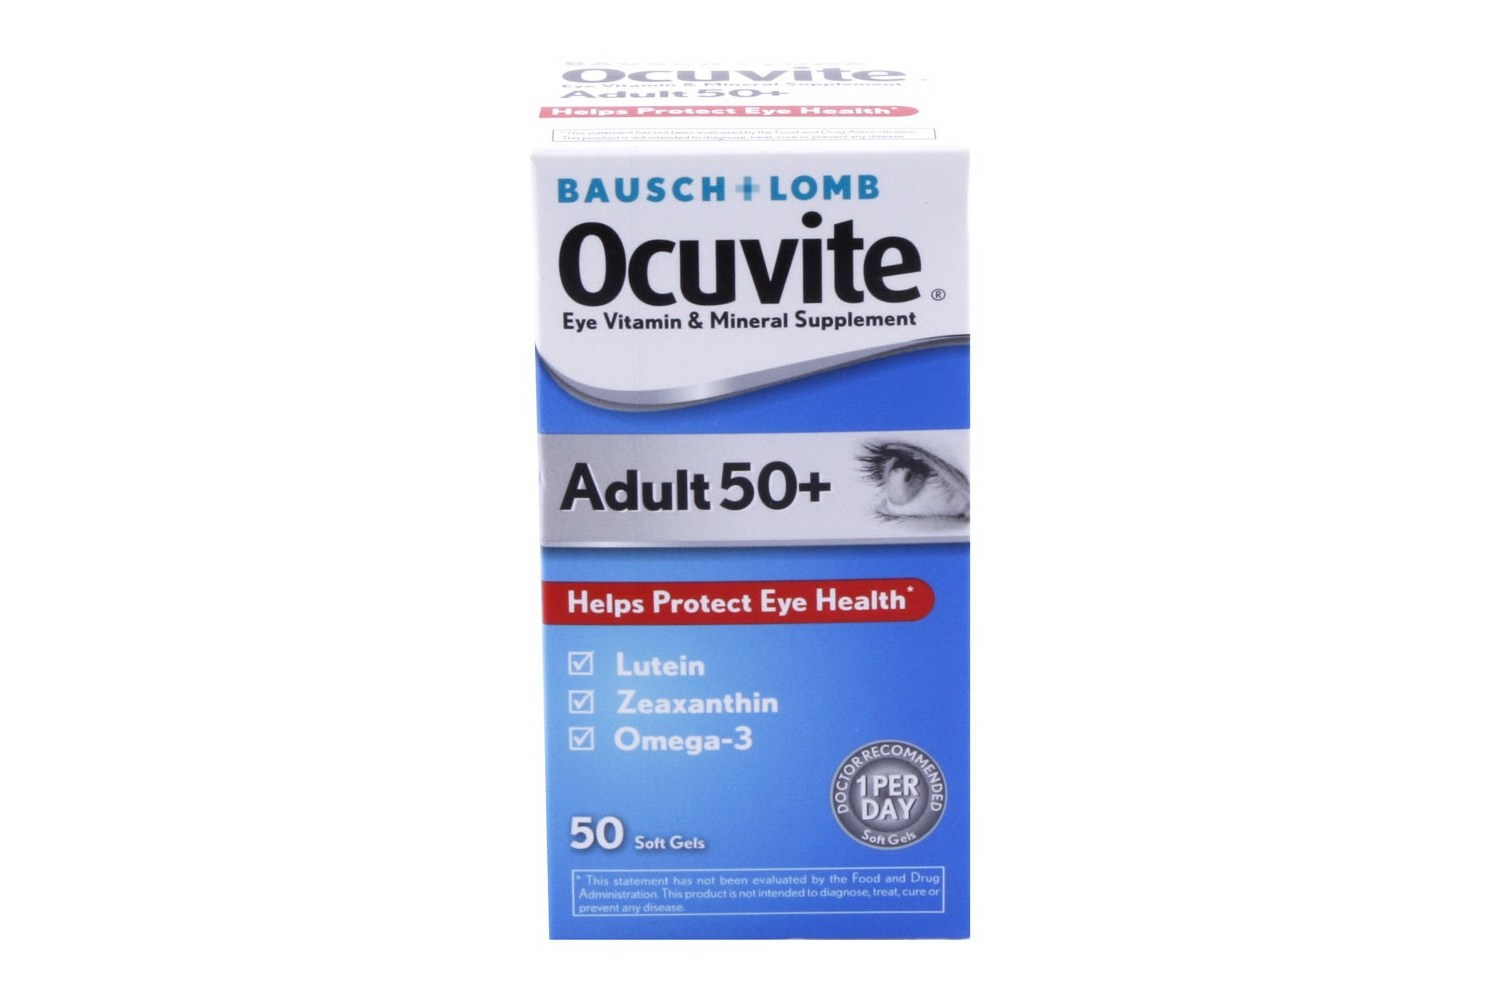 Ocuvite Adult 50 Eye Supplement and Vision Care Vitamins 50 ct